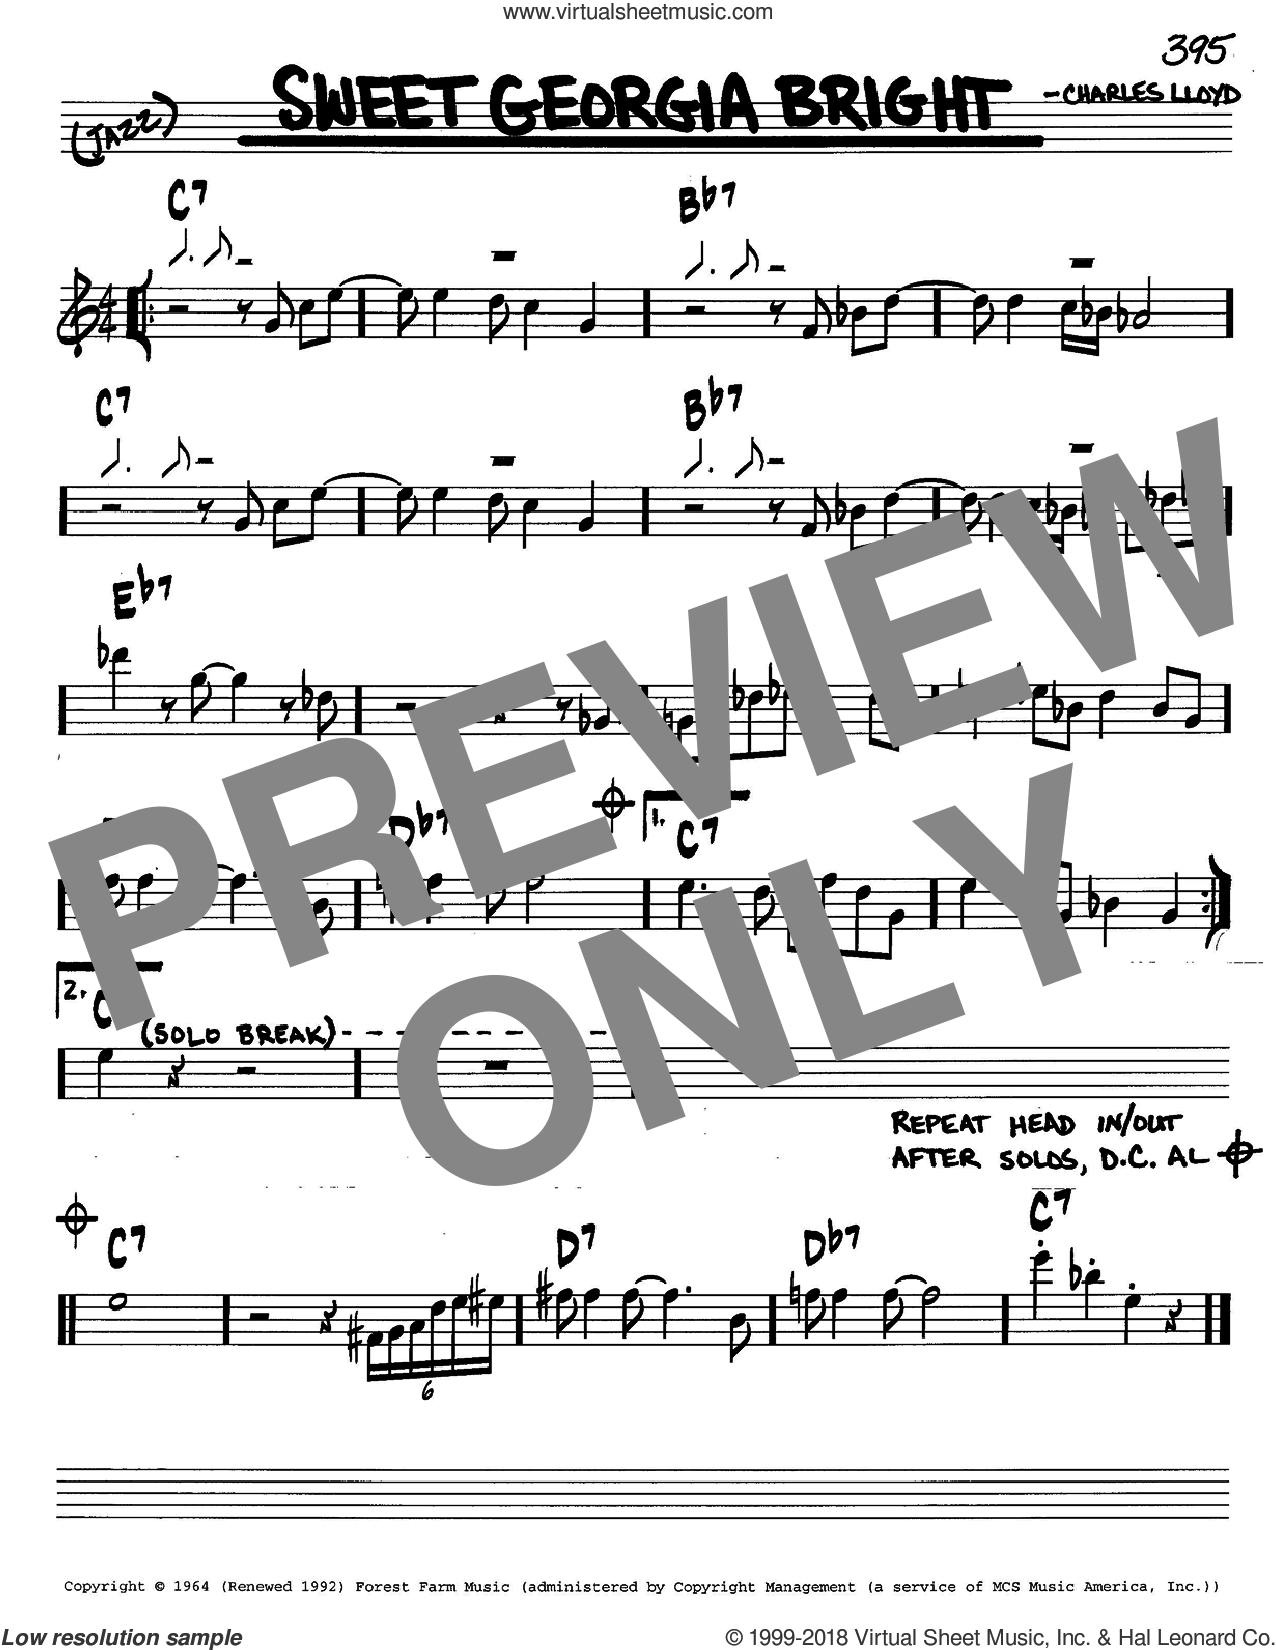 Sweet Georgia Bright sheet music for voice and other instruments (in C) by Charles Lloyd, intermediate skill level